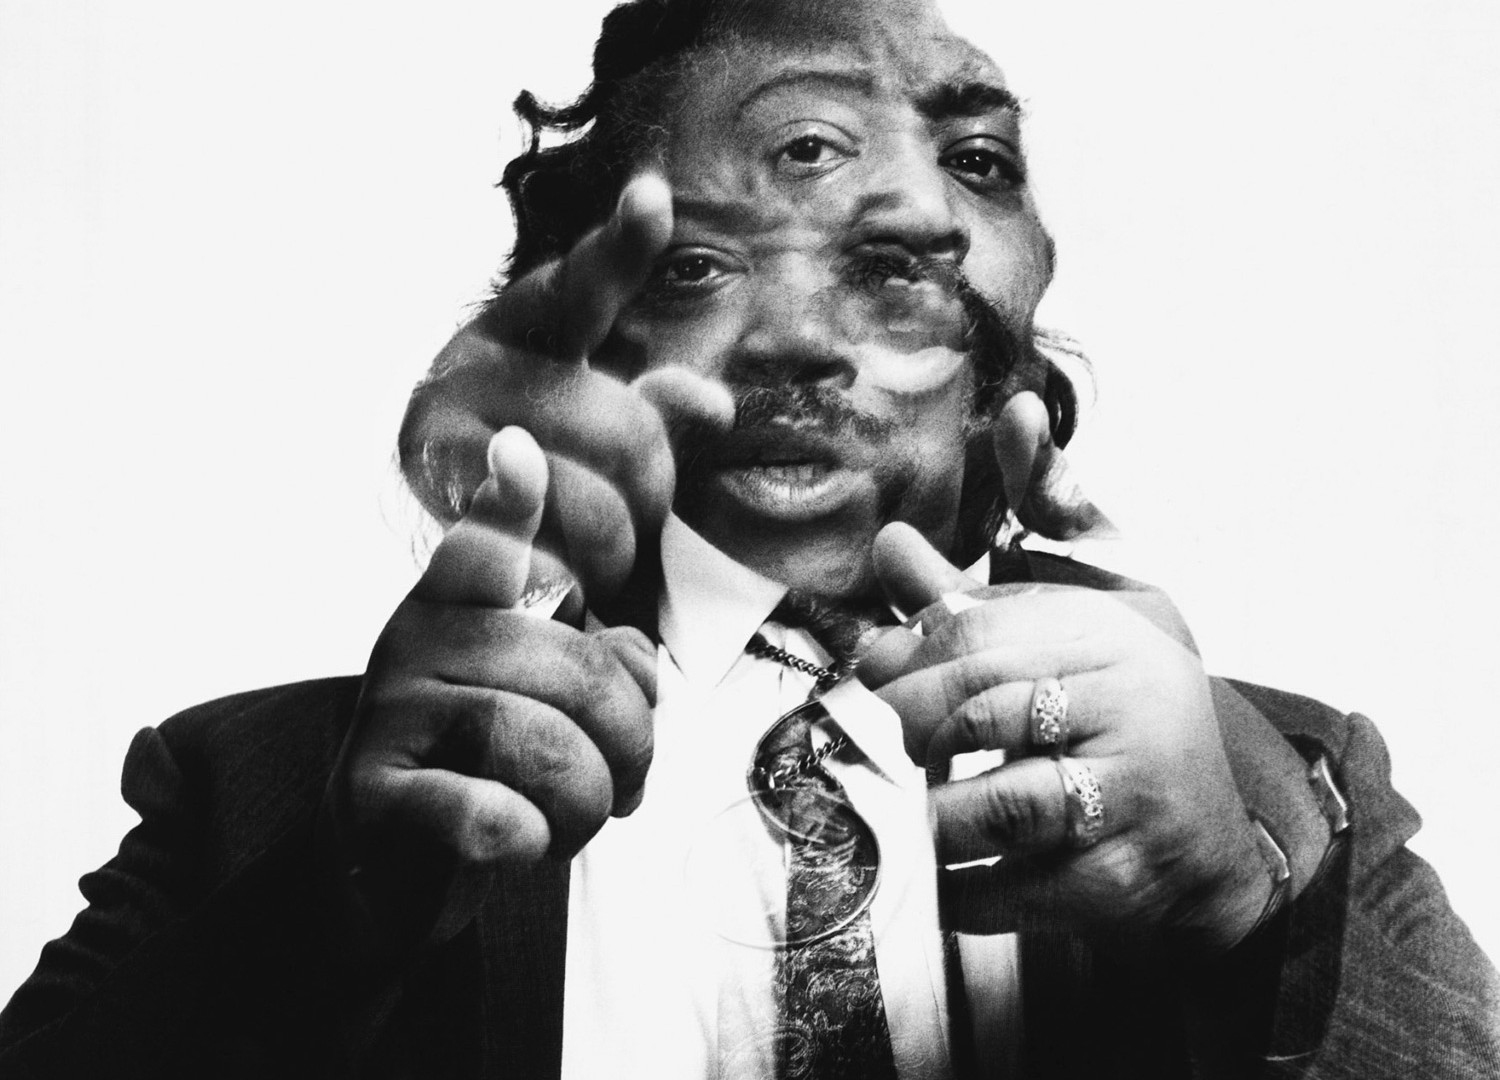 Richard Avedon, Reverend Al Sharpton, New York, January 6, 1993